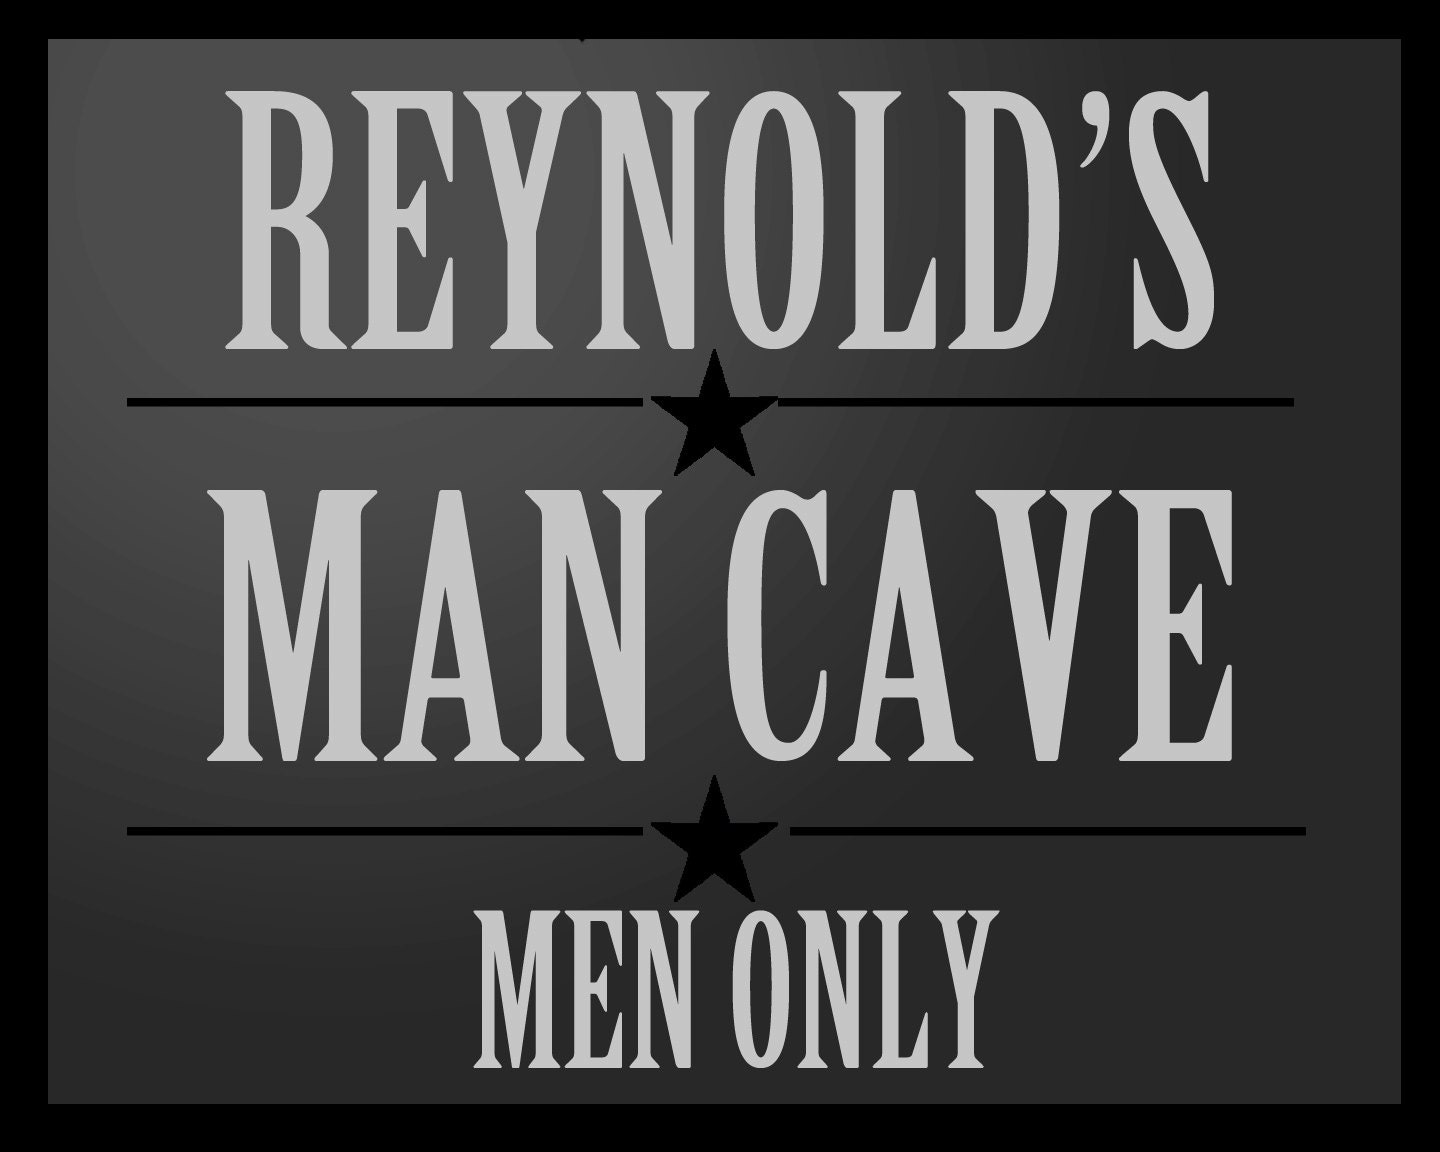 Personalized Man Cave Signs Etsy : Personalized man cave sign custmoize it just for him great